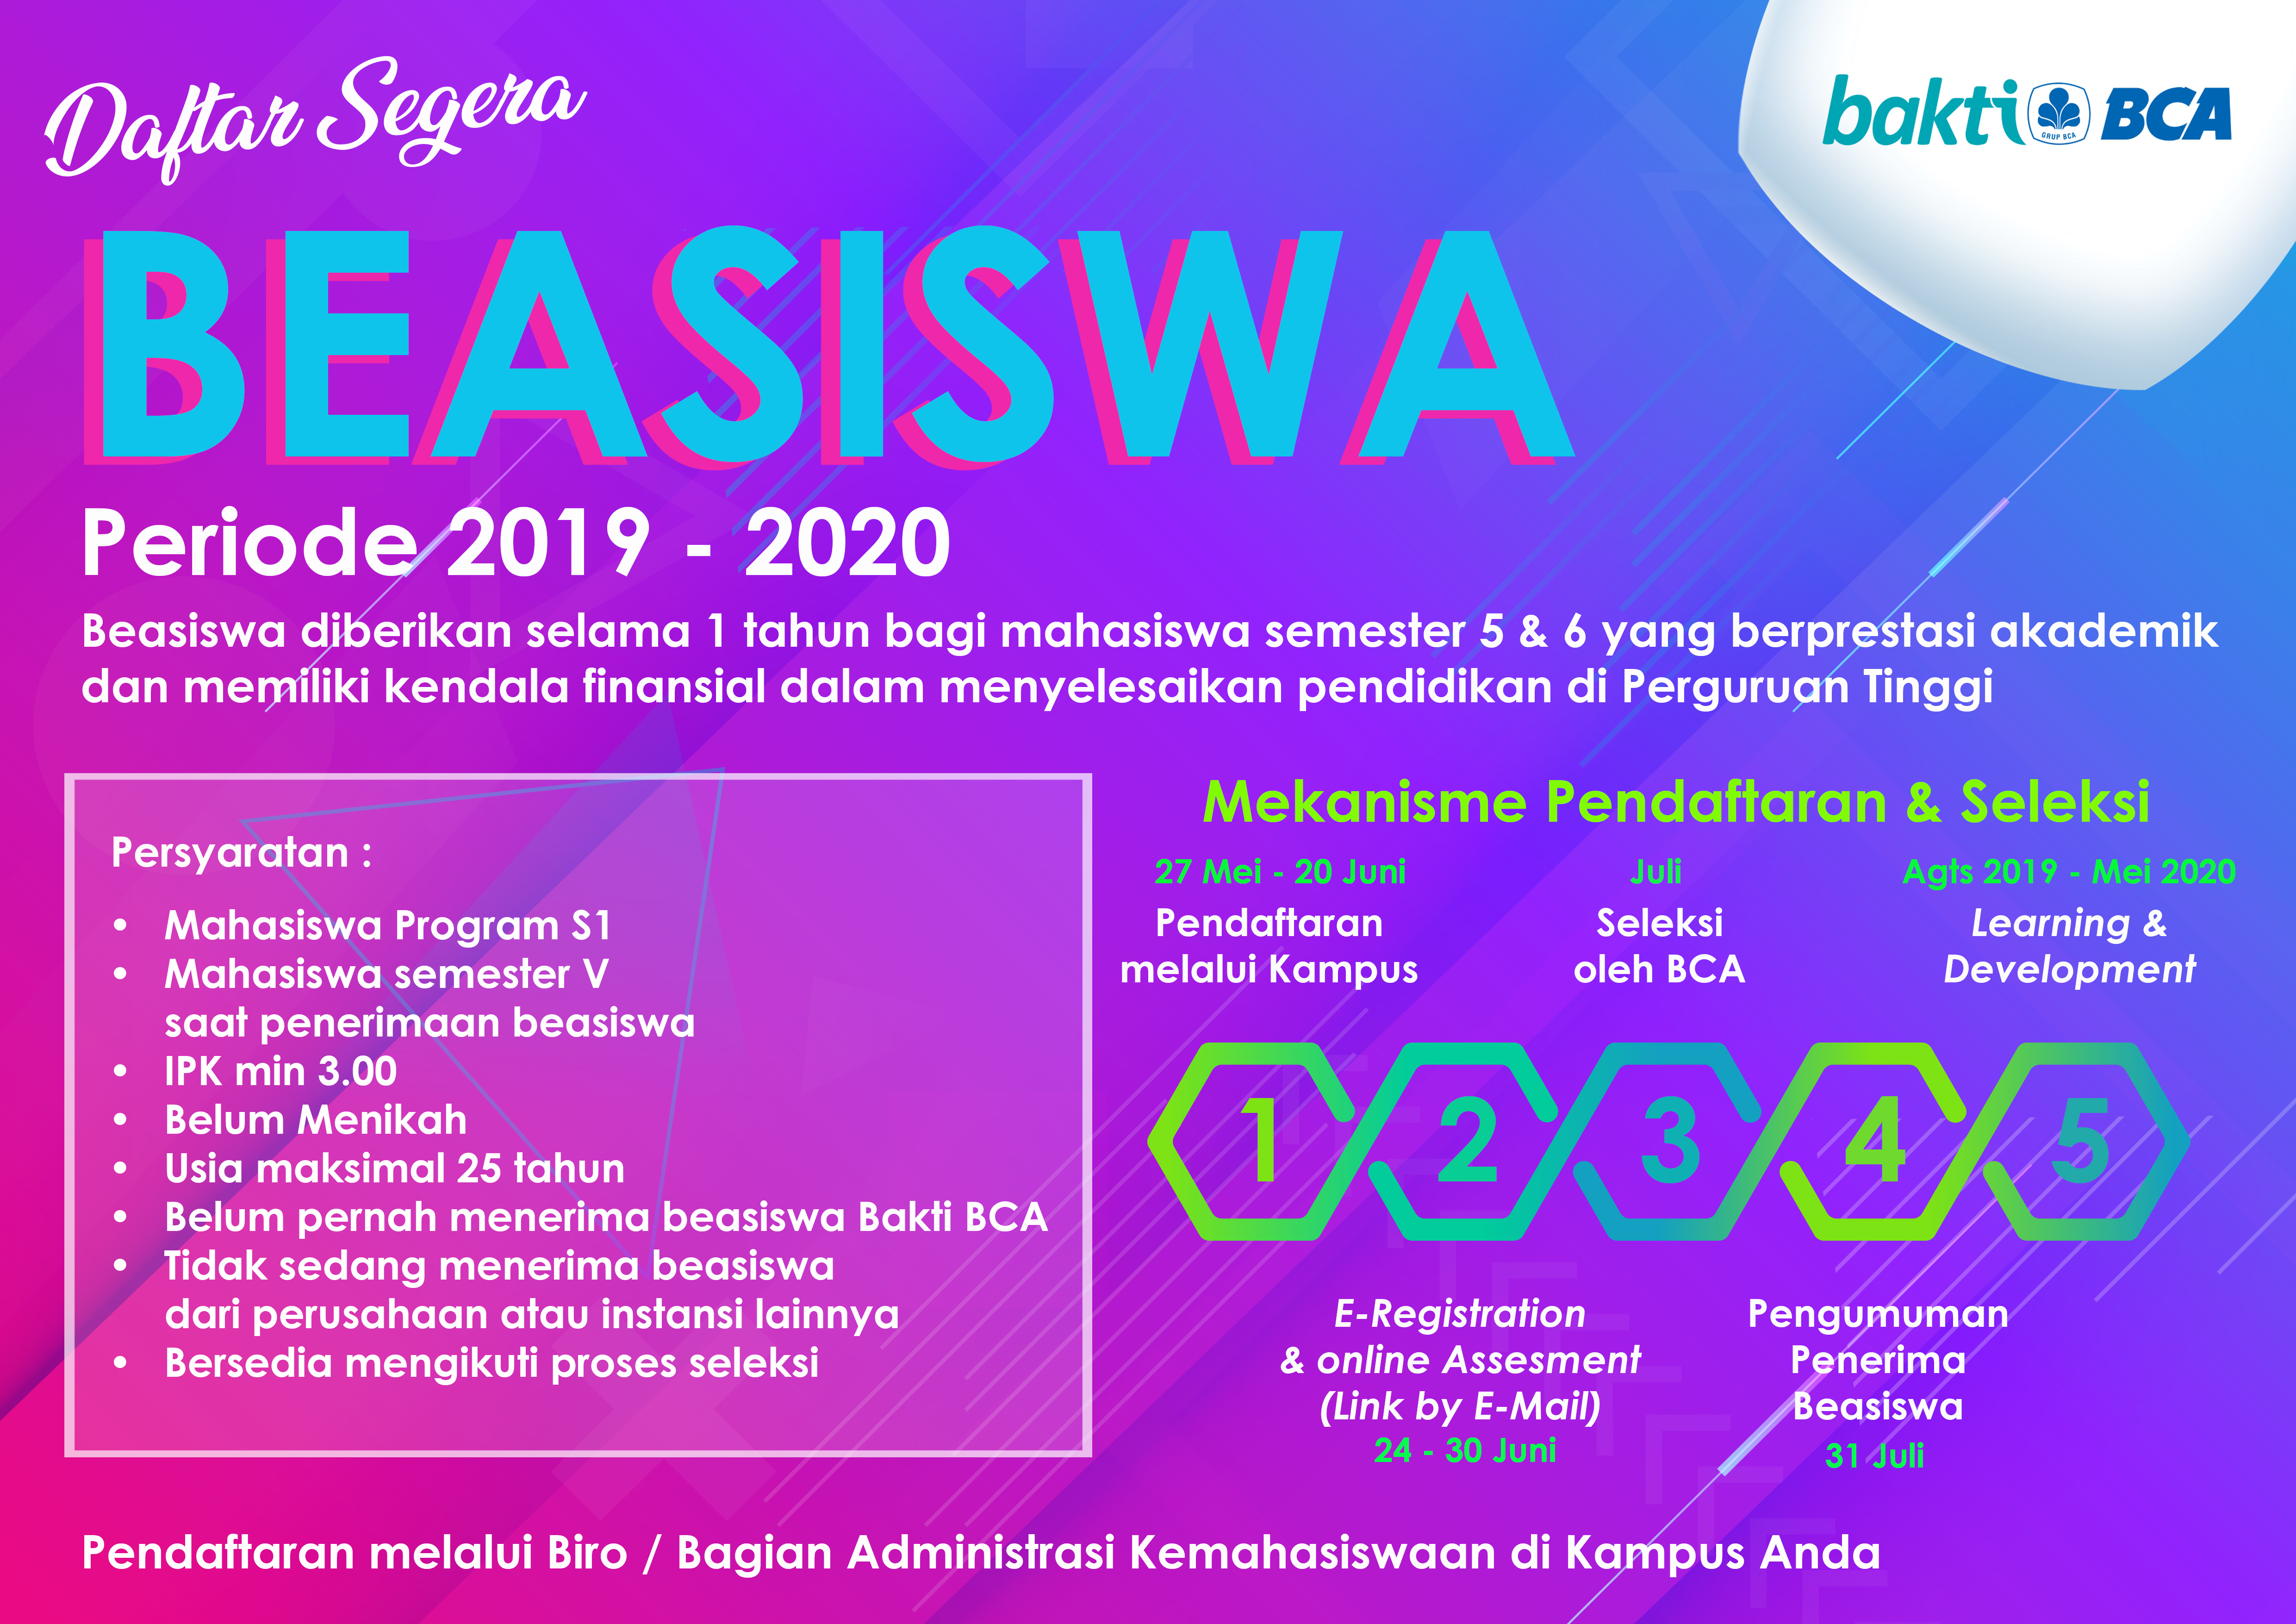 Brosur_Beasiswa_2019_-_2020_upload